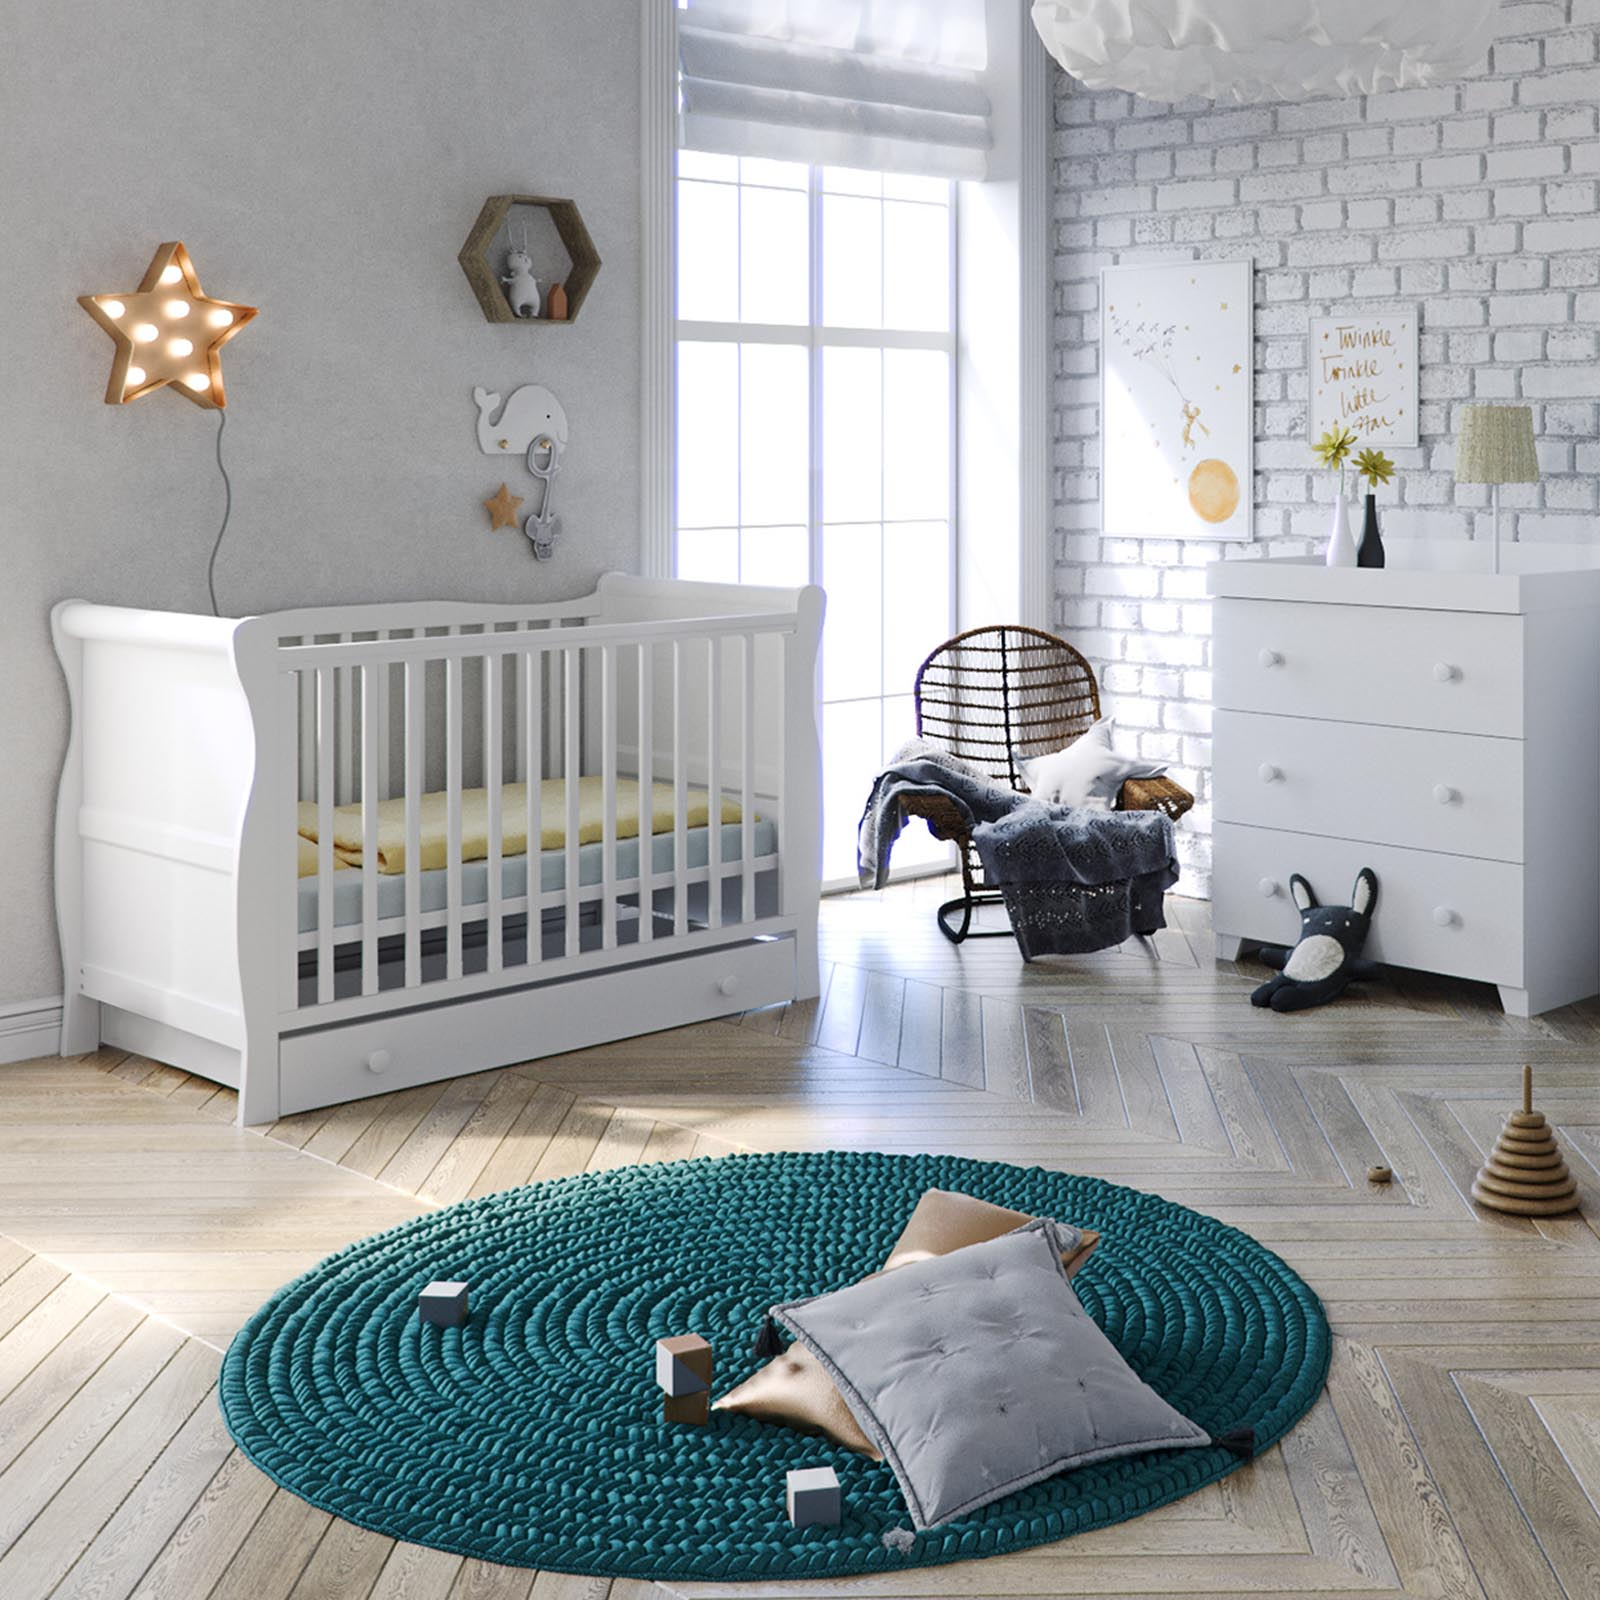 Little Acorns Sleigh Cot Bed 4 Piece Nursery Room Set Cotbed Drawer With Dresser White